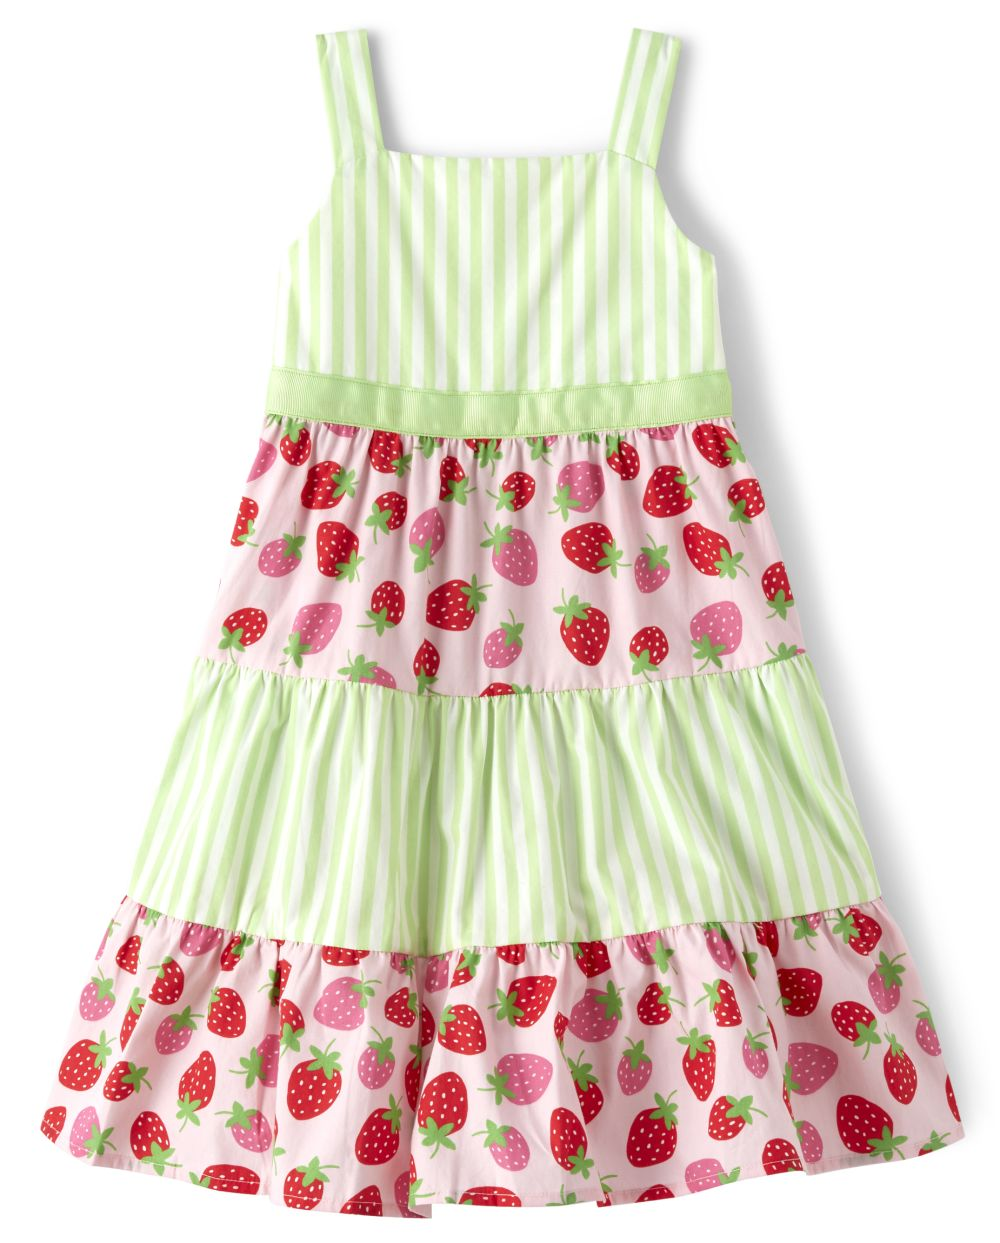 Girls Striped Tiered Dress - Strawberry Patch